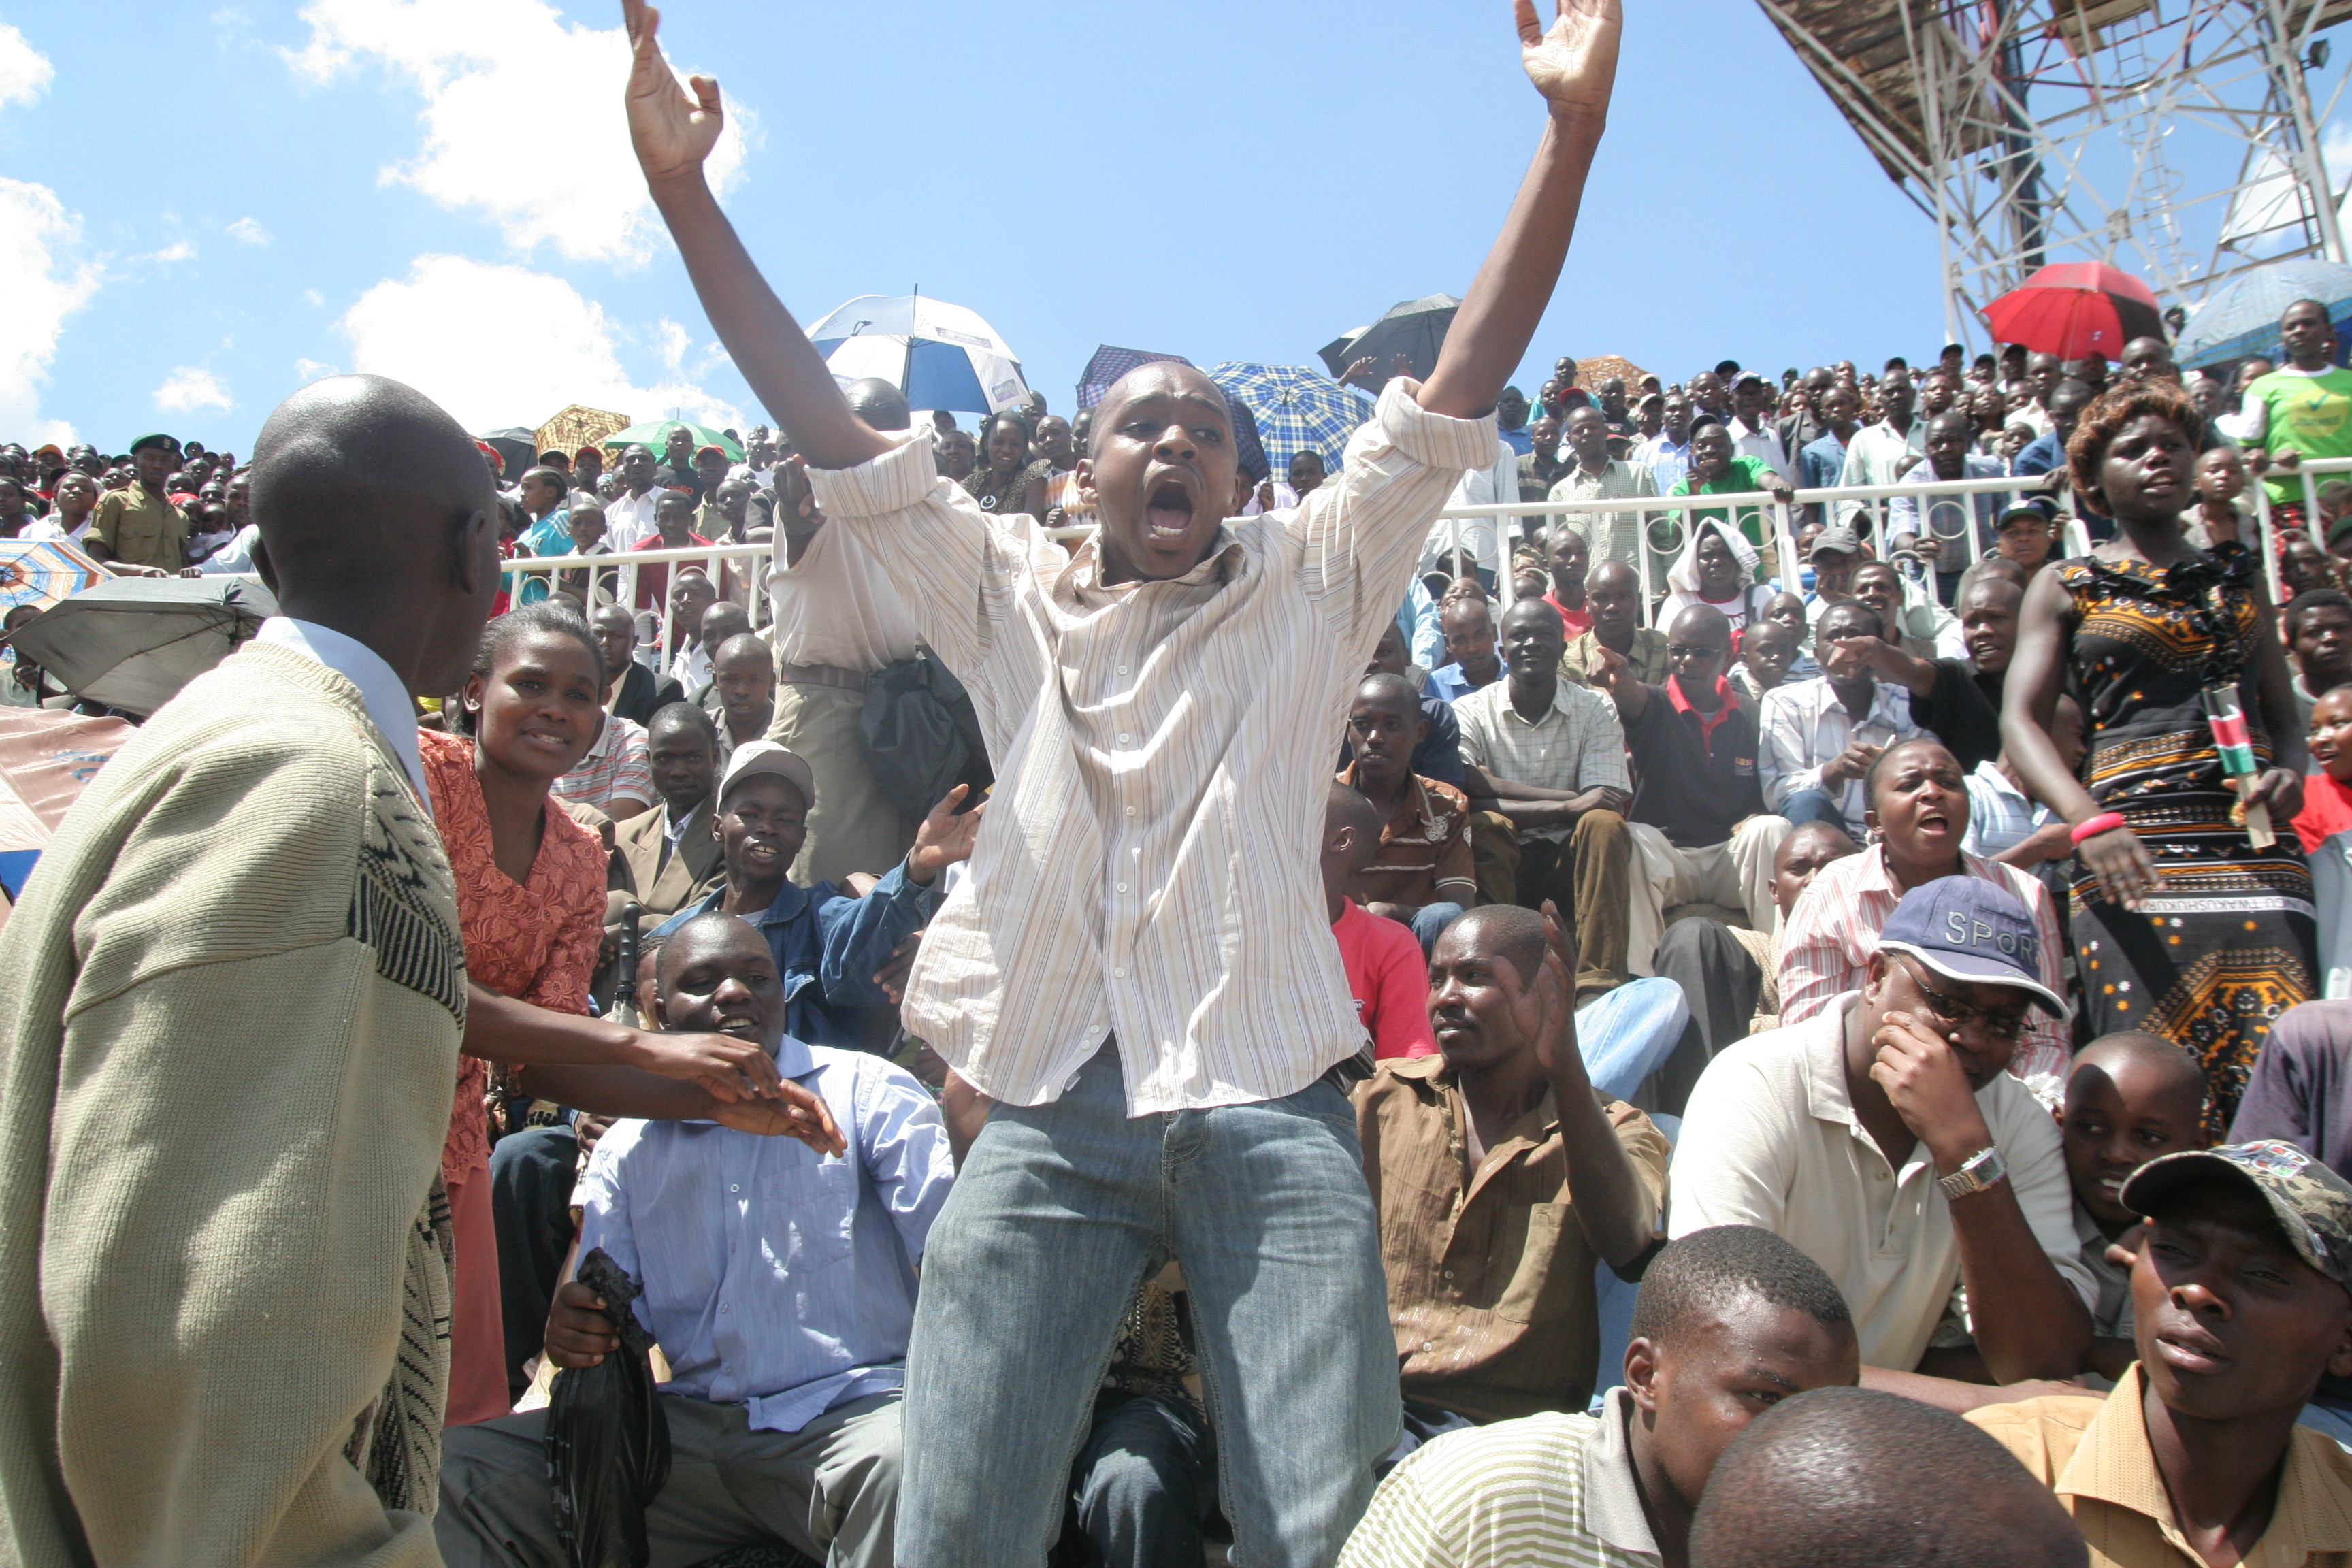 The moment of truth: Boniface Mwangi stands up alone to protest on June 1, 2009. He was arrested, beaten and jailed. Photo courtesy of Boniface Mwangi